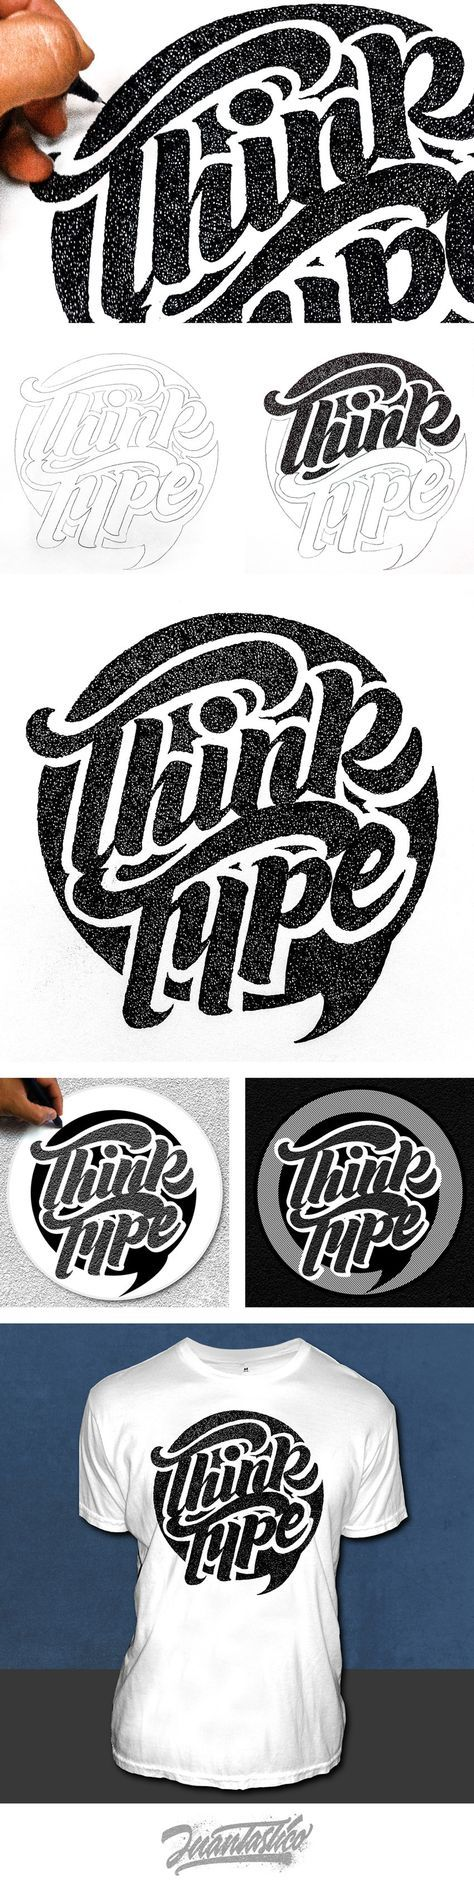 LETTERING DESIGN... Typography Illustrations #ElJuantastico                                                                                                                                                     Más